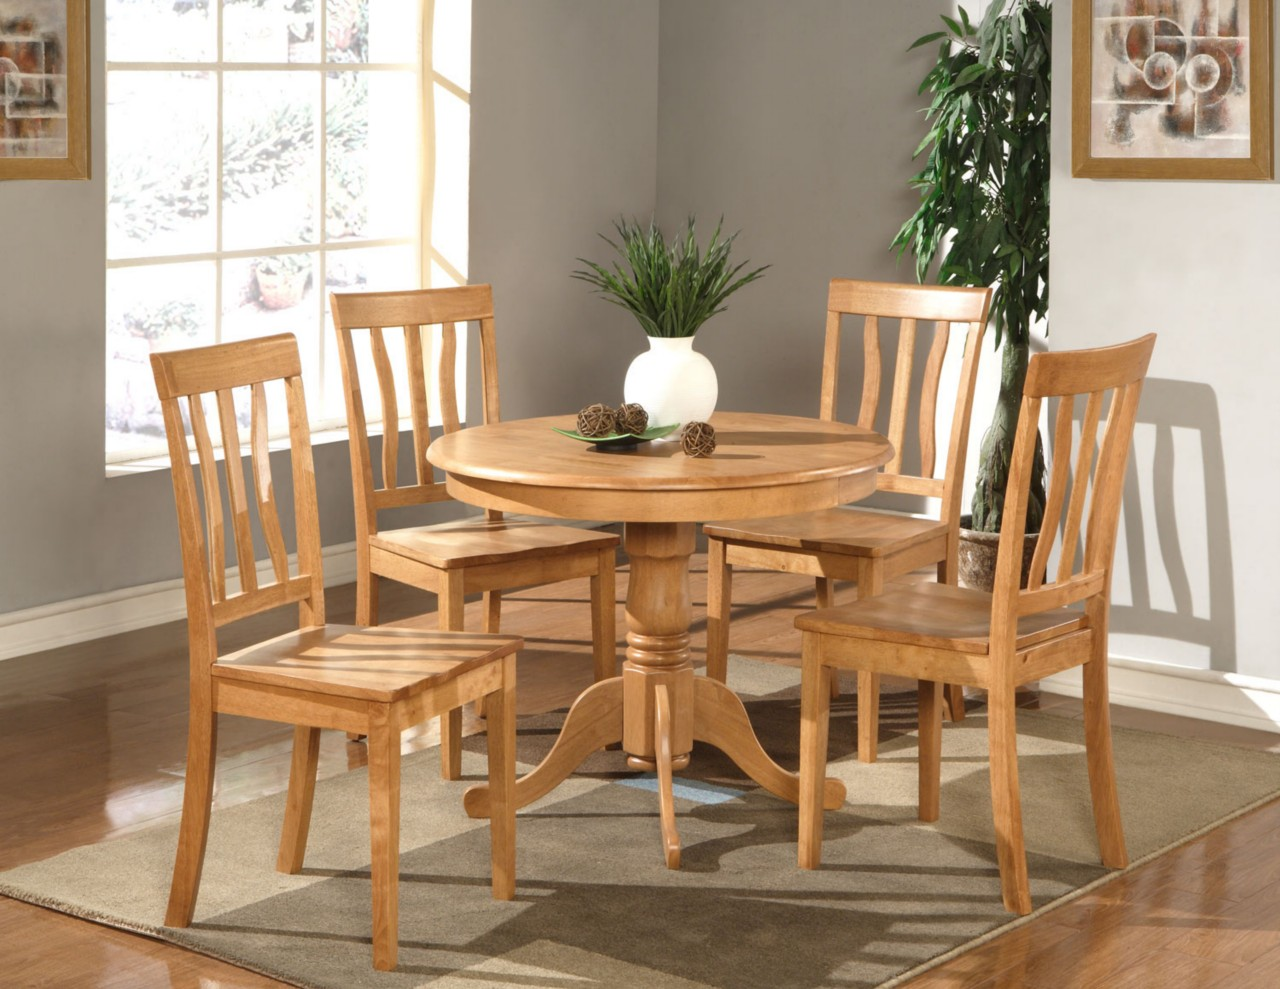 5 pc dinette kitchen round table with 4 wood seat chairs in oak finish 36 round ebay. Black Bedroom Furniture Sets. Home Design Ideas